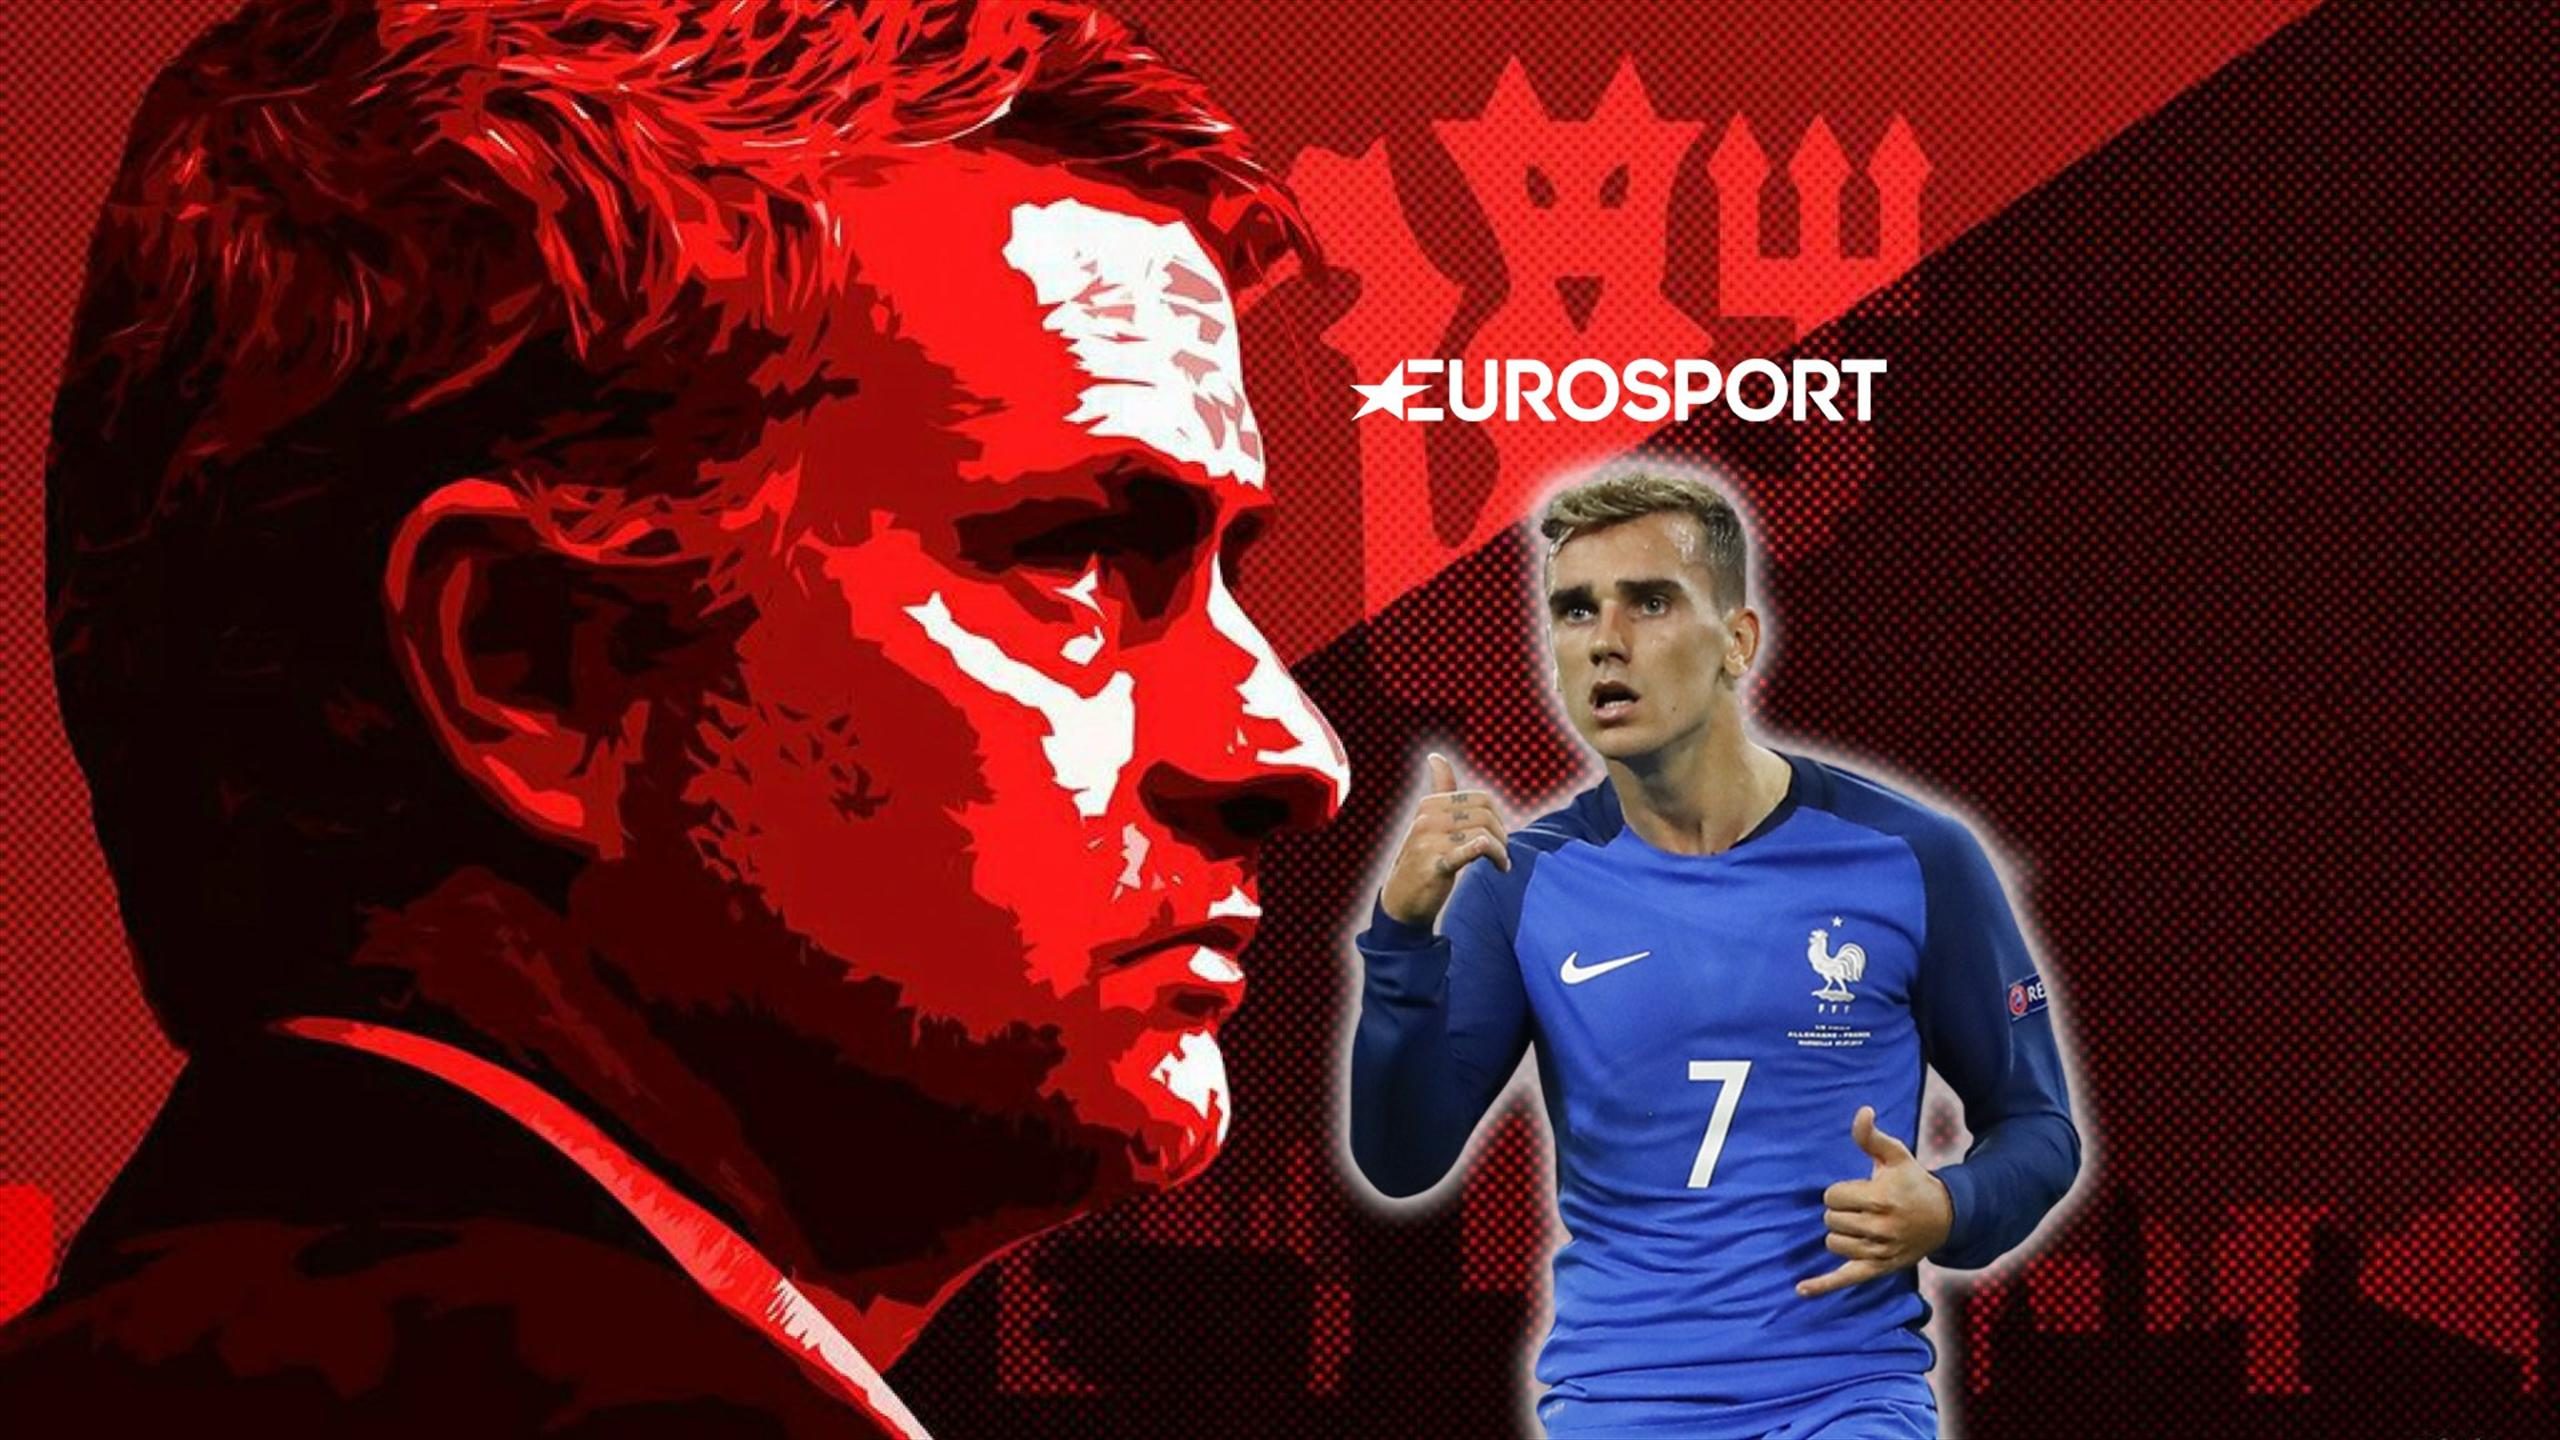 Griezmann sparks Woodward & Mourinho rift at Old Trafford - Euro Papers